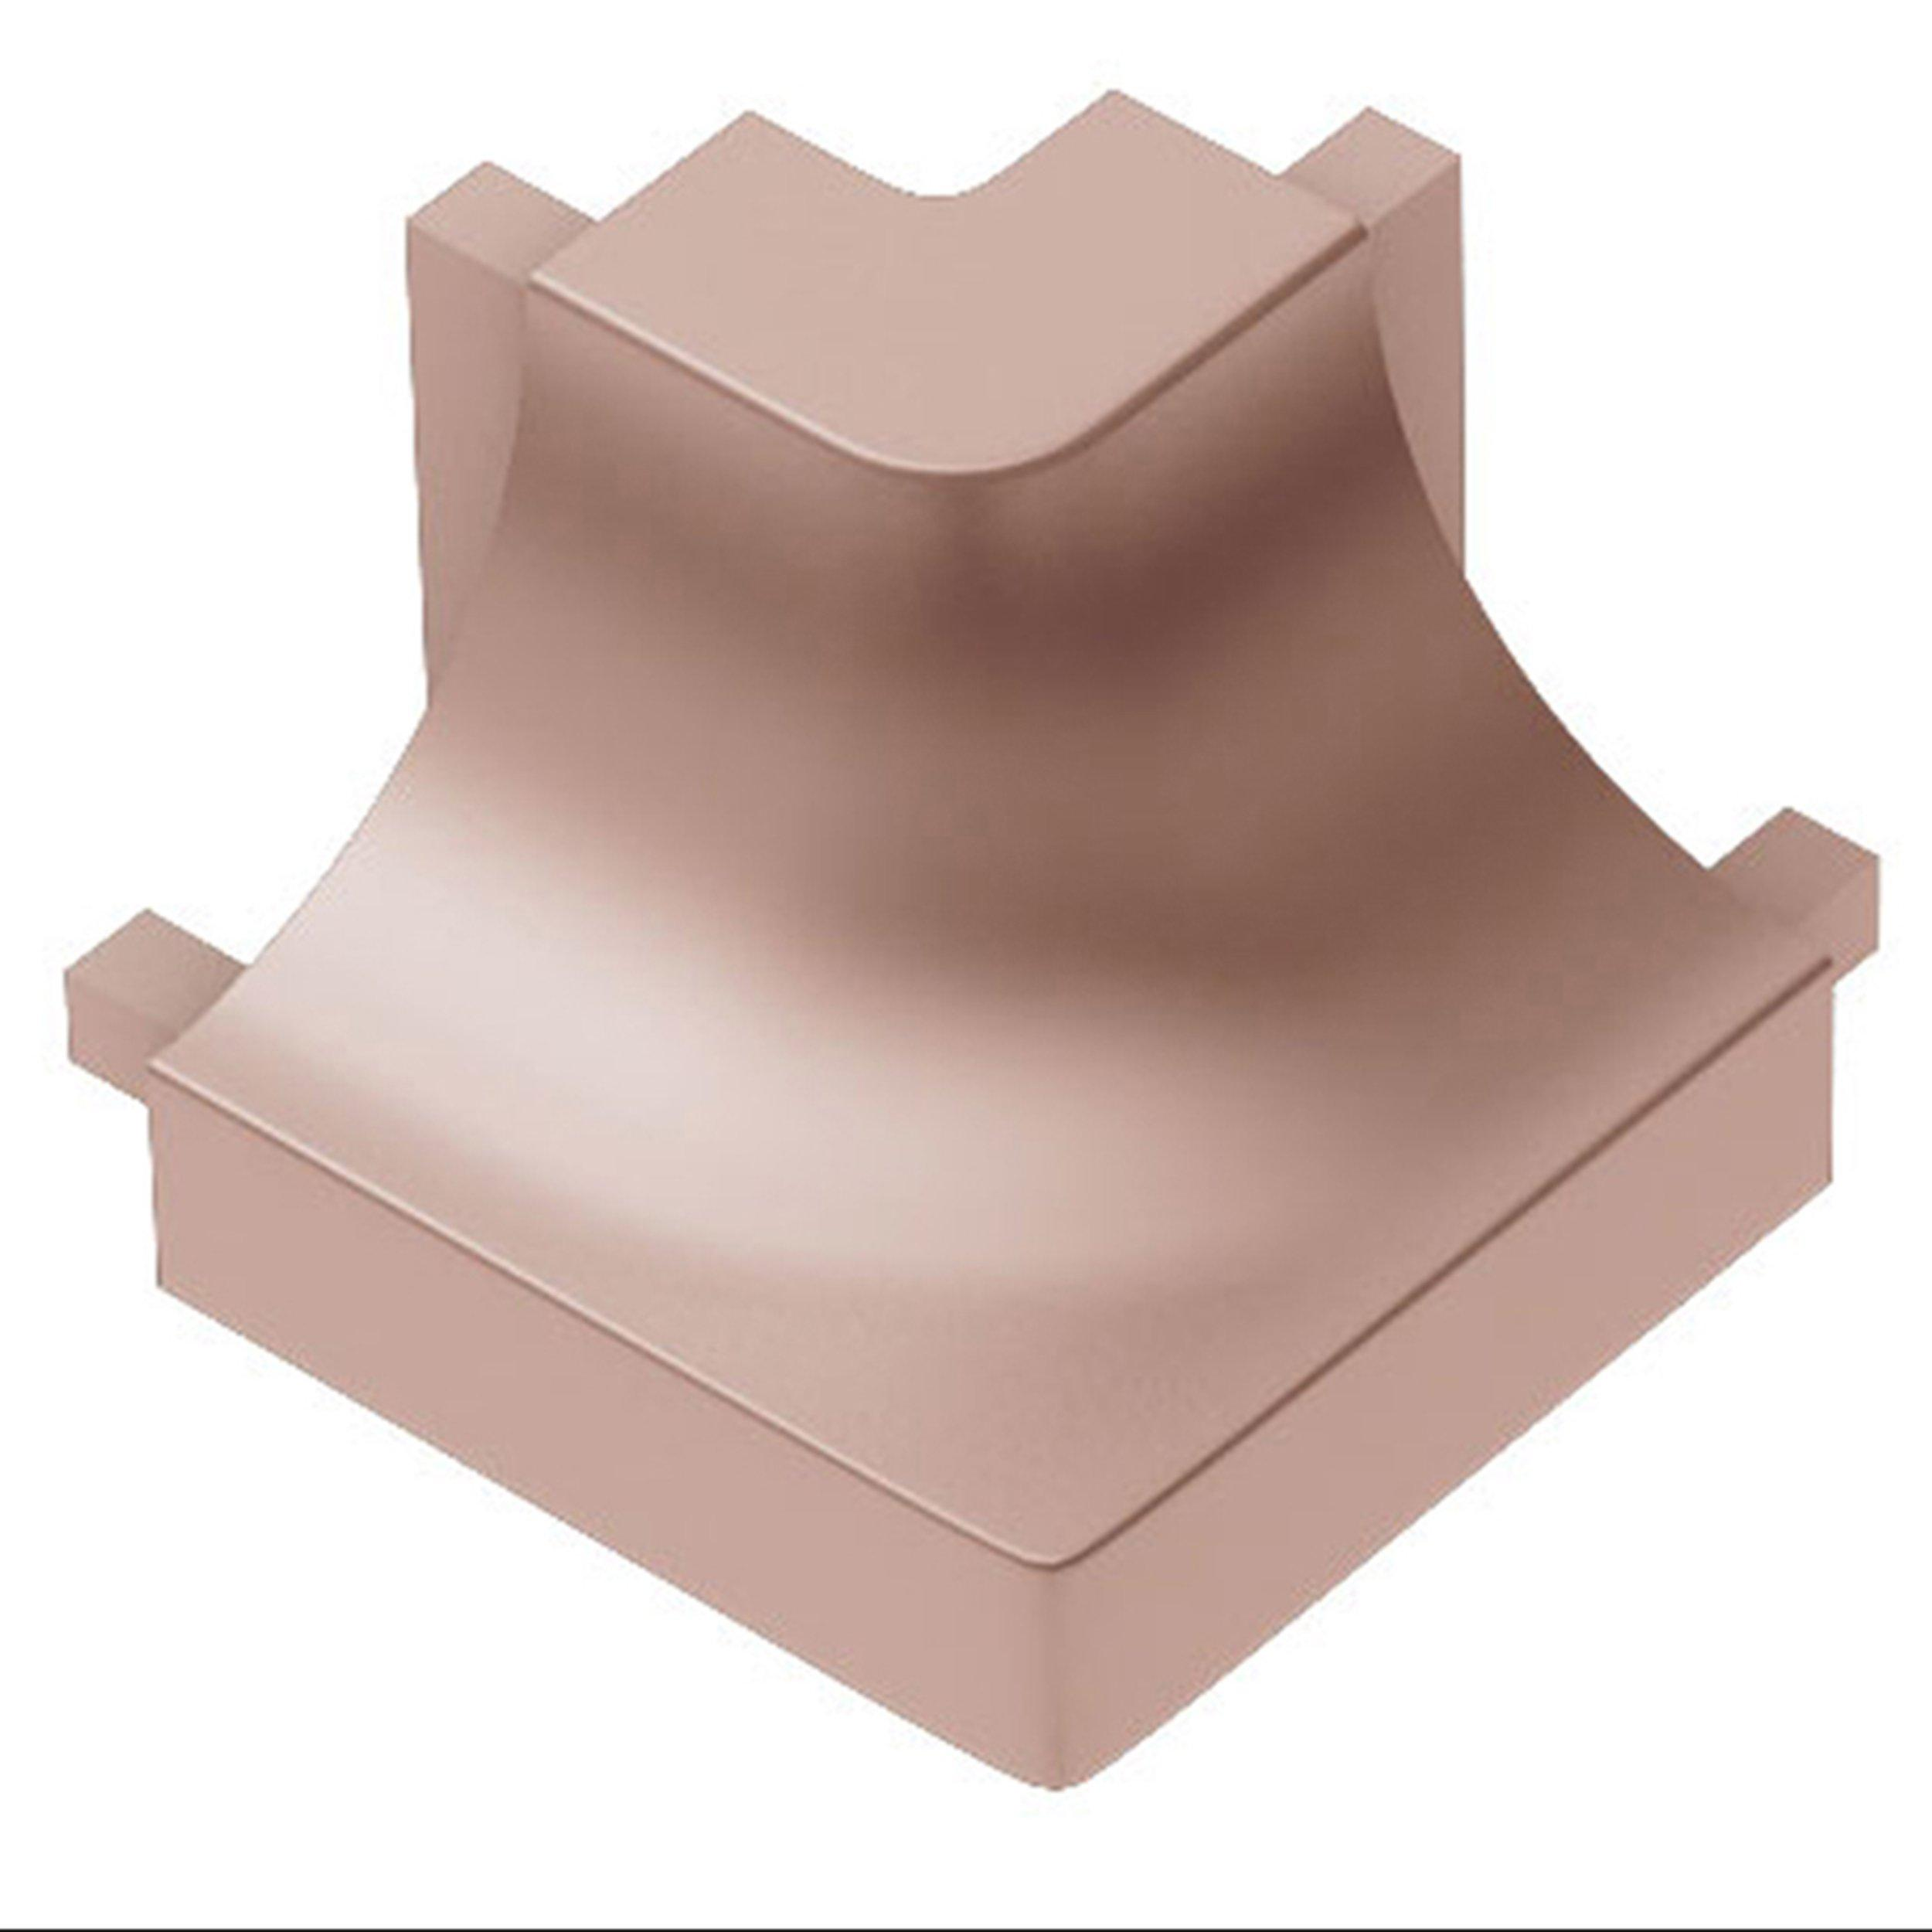 Schluter Dilex Ahk Out Corner 90 Degrees Aluminum Satin Copper Tuscan Colors Cove Base 90 Degrees